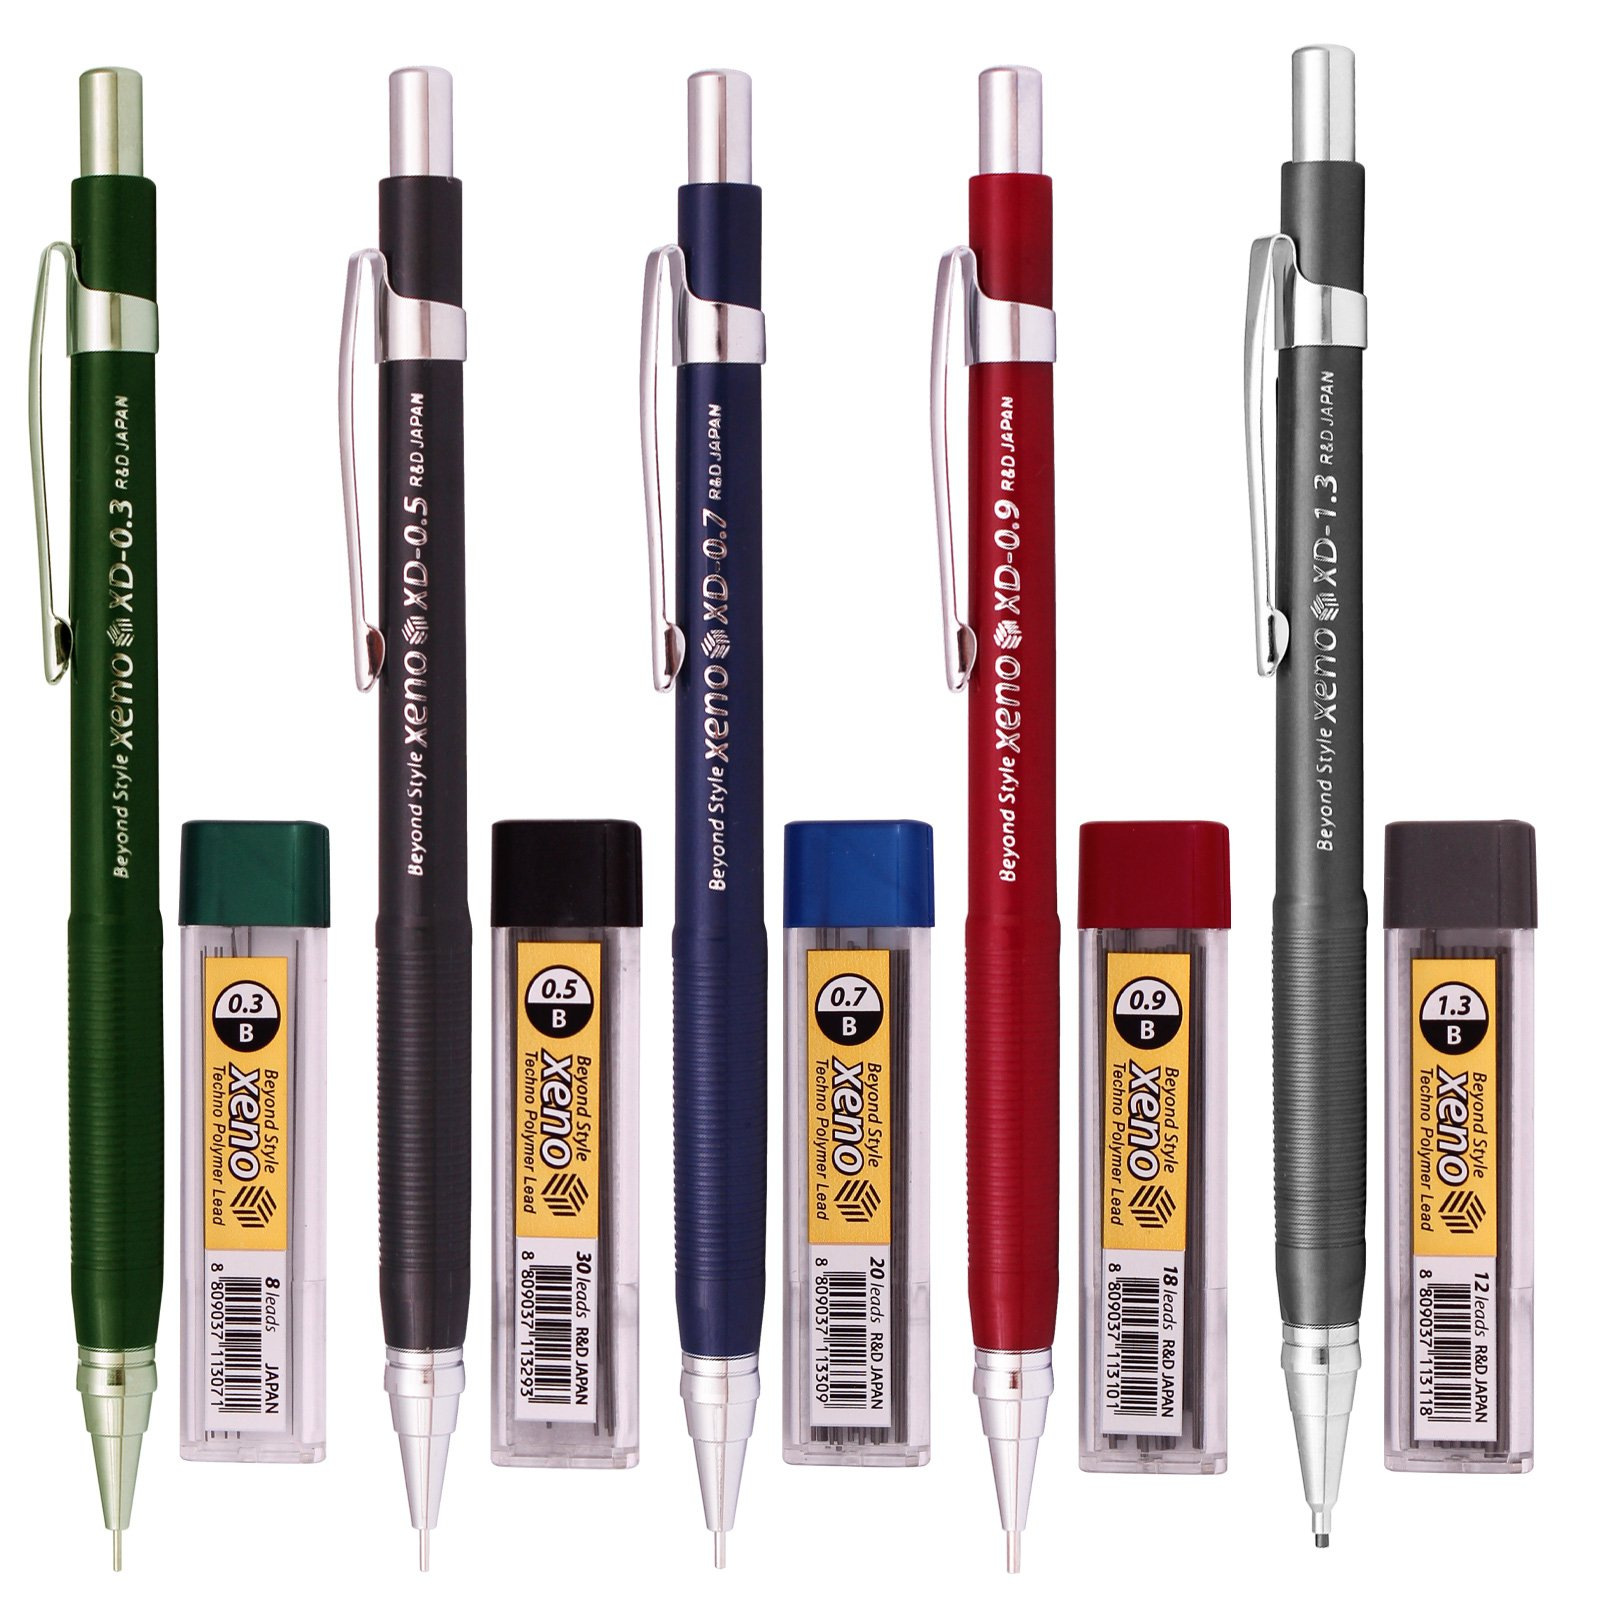 Xeno Beyond Style-Xd Mechanical Pencil for Drafting Sharp Pencils 0.3 mm /0.5 mm /0.7 mm /0.9 mm/ 1.3 mm (Pack of 5 Pencils) + Lead by Xeno (Image #1)